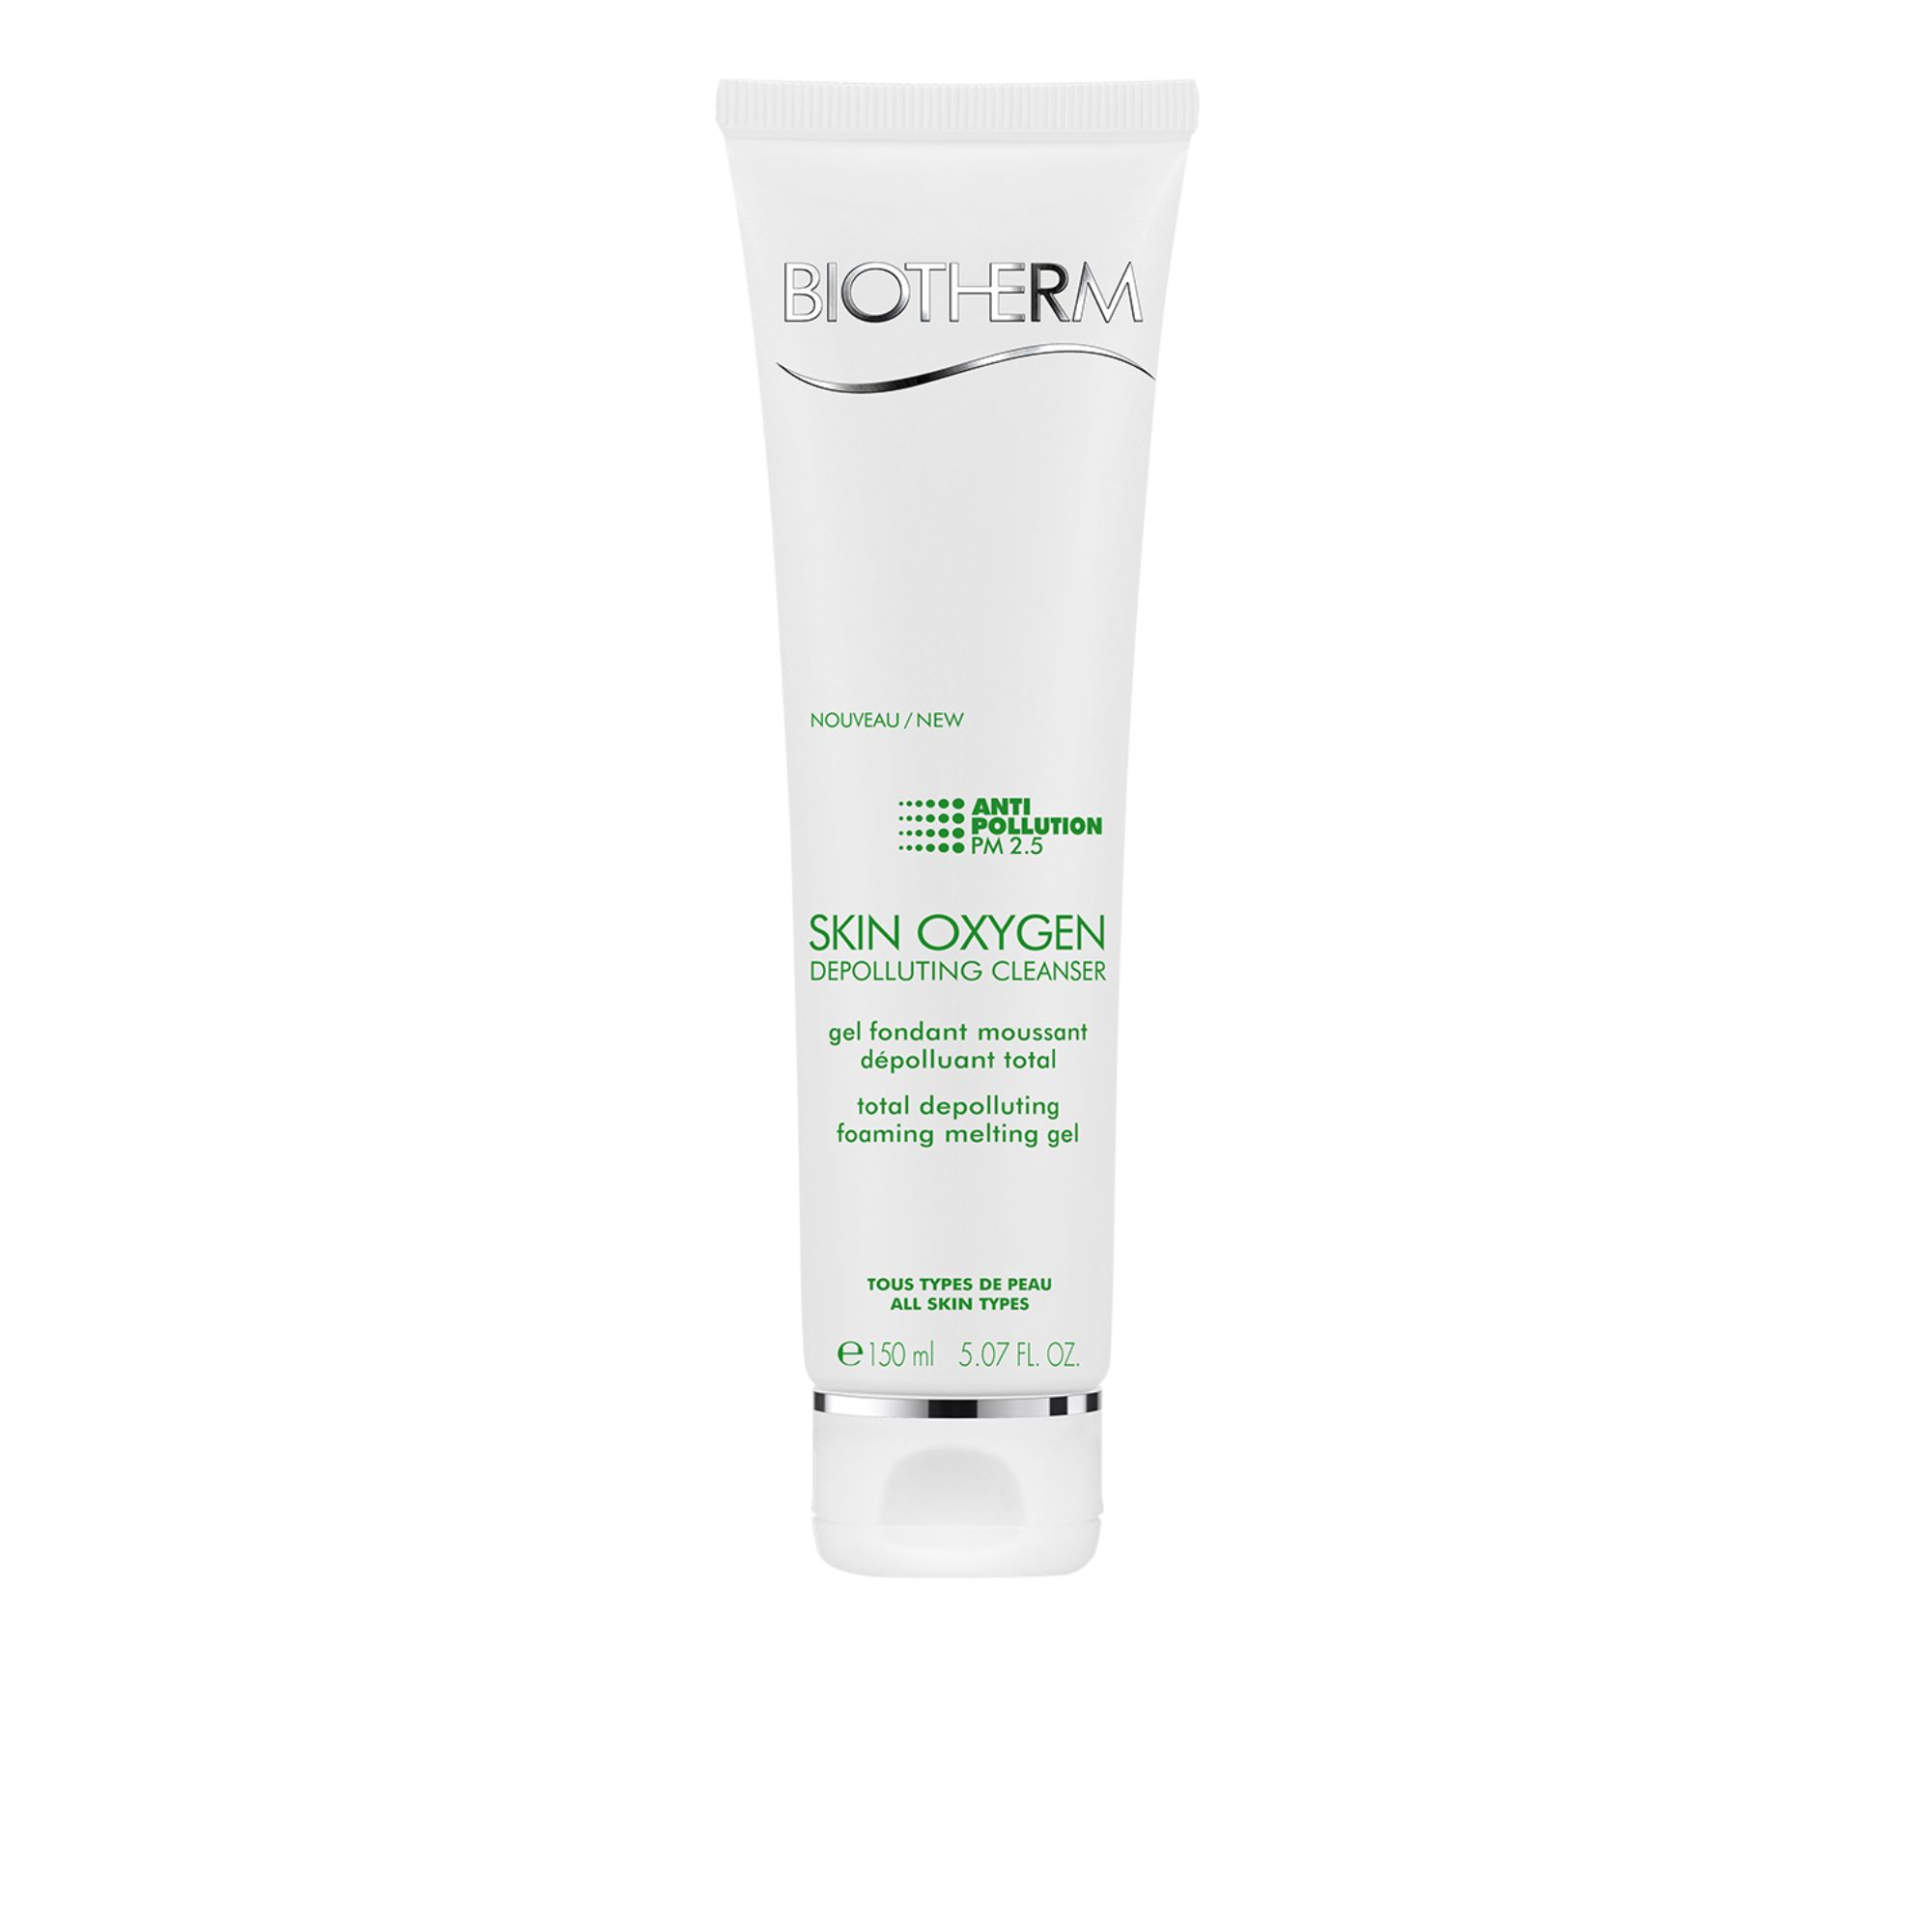 Skin Oxygen Cleansing Mousse 150 ml